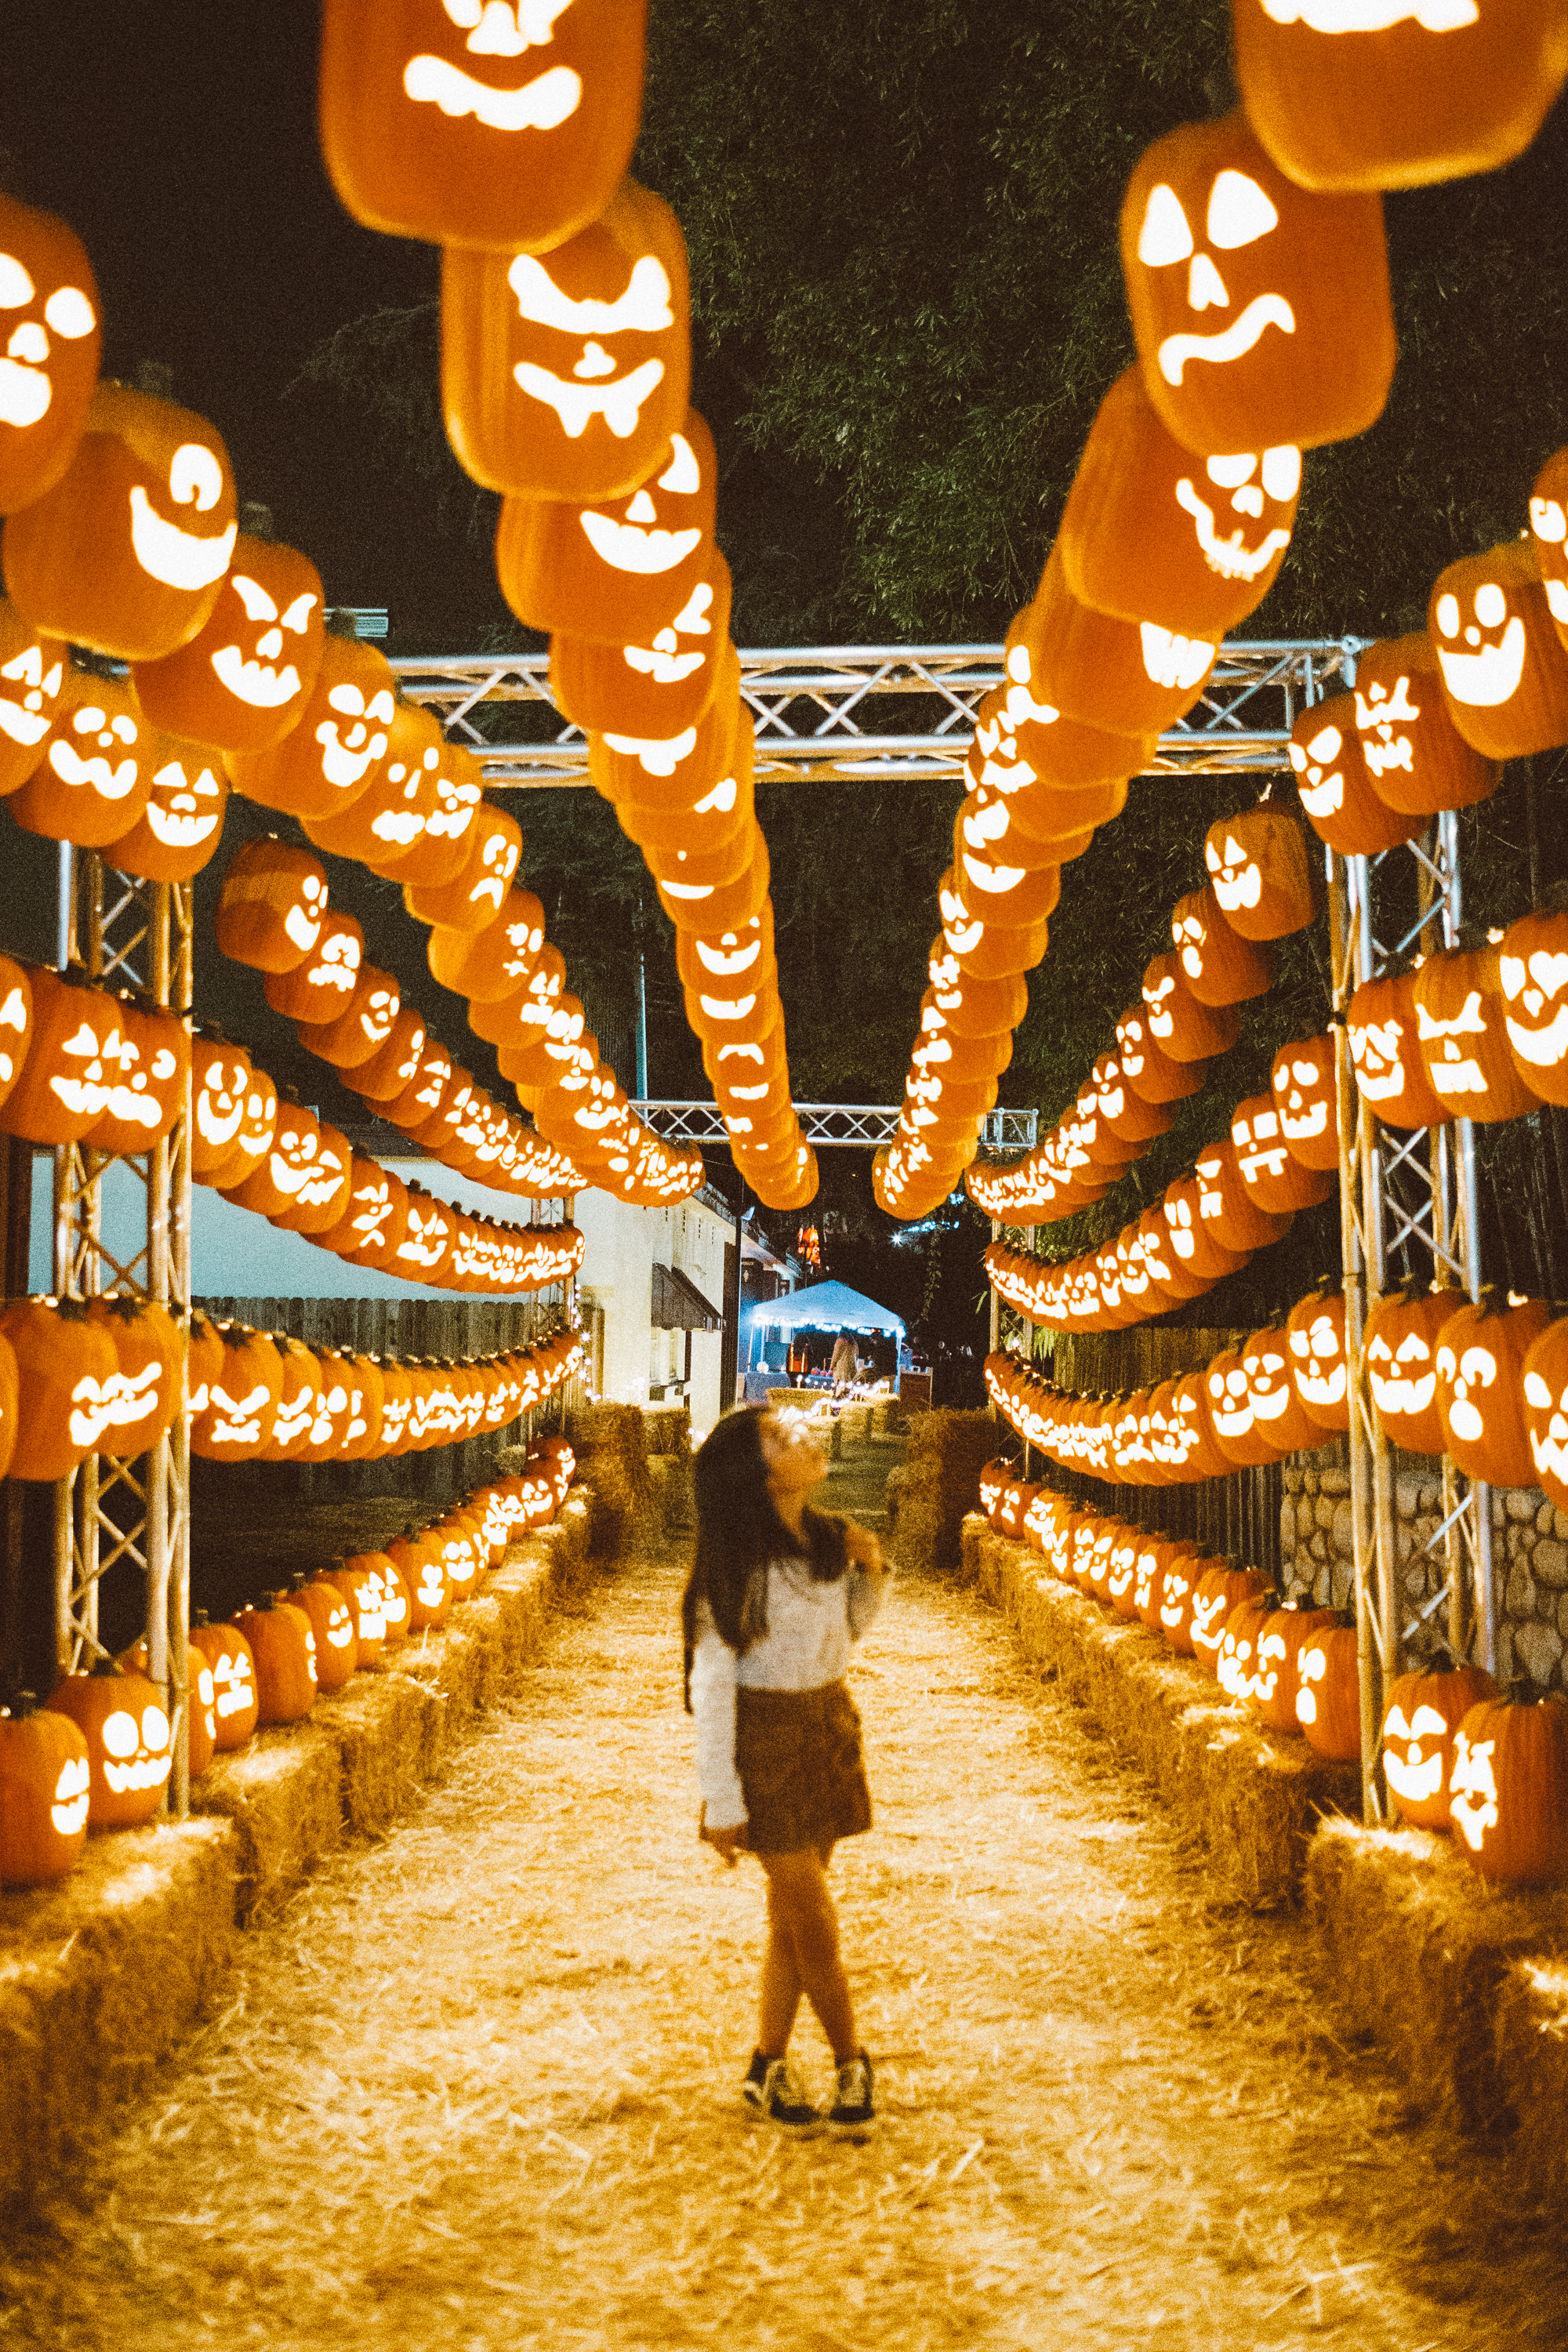 Pumpkin-nights-festival-halloween-family